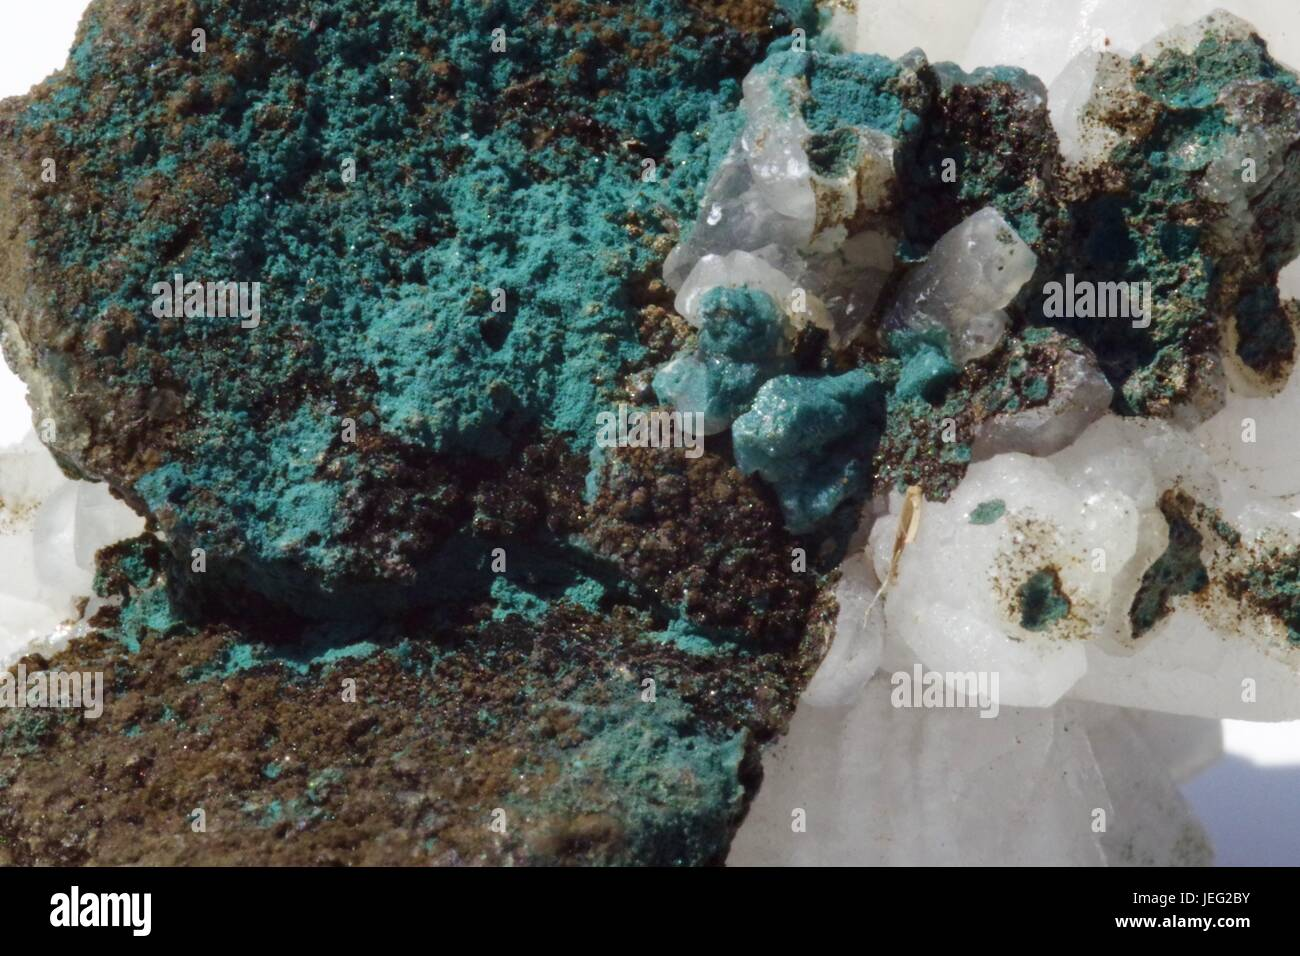 Macro Photo of Calcite and Copper Oxide Crystal  Geological